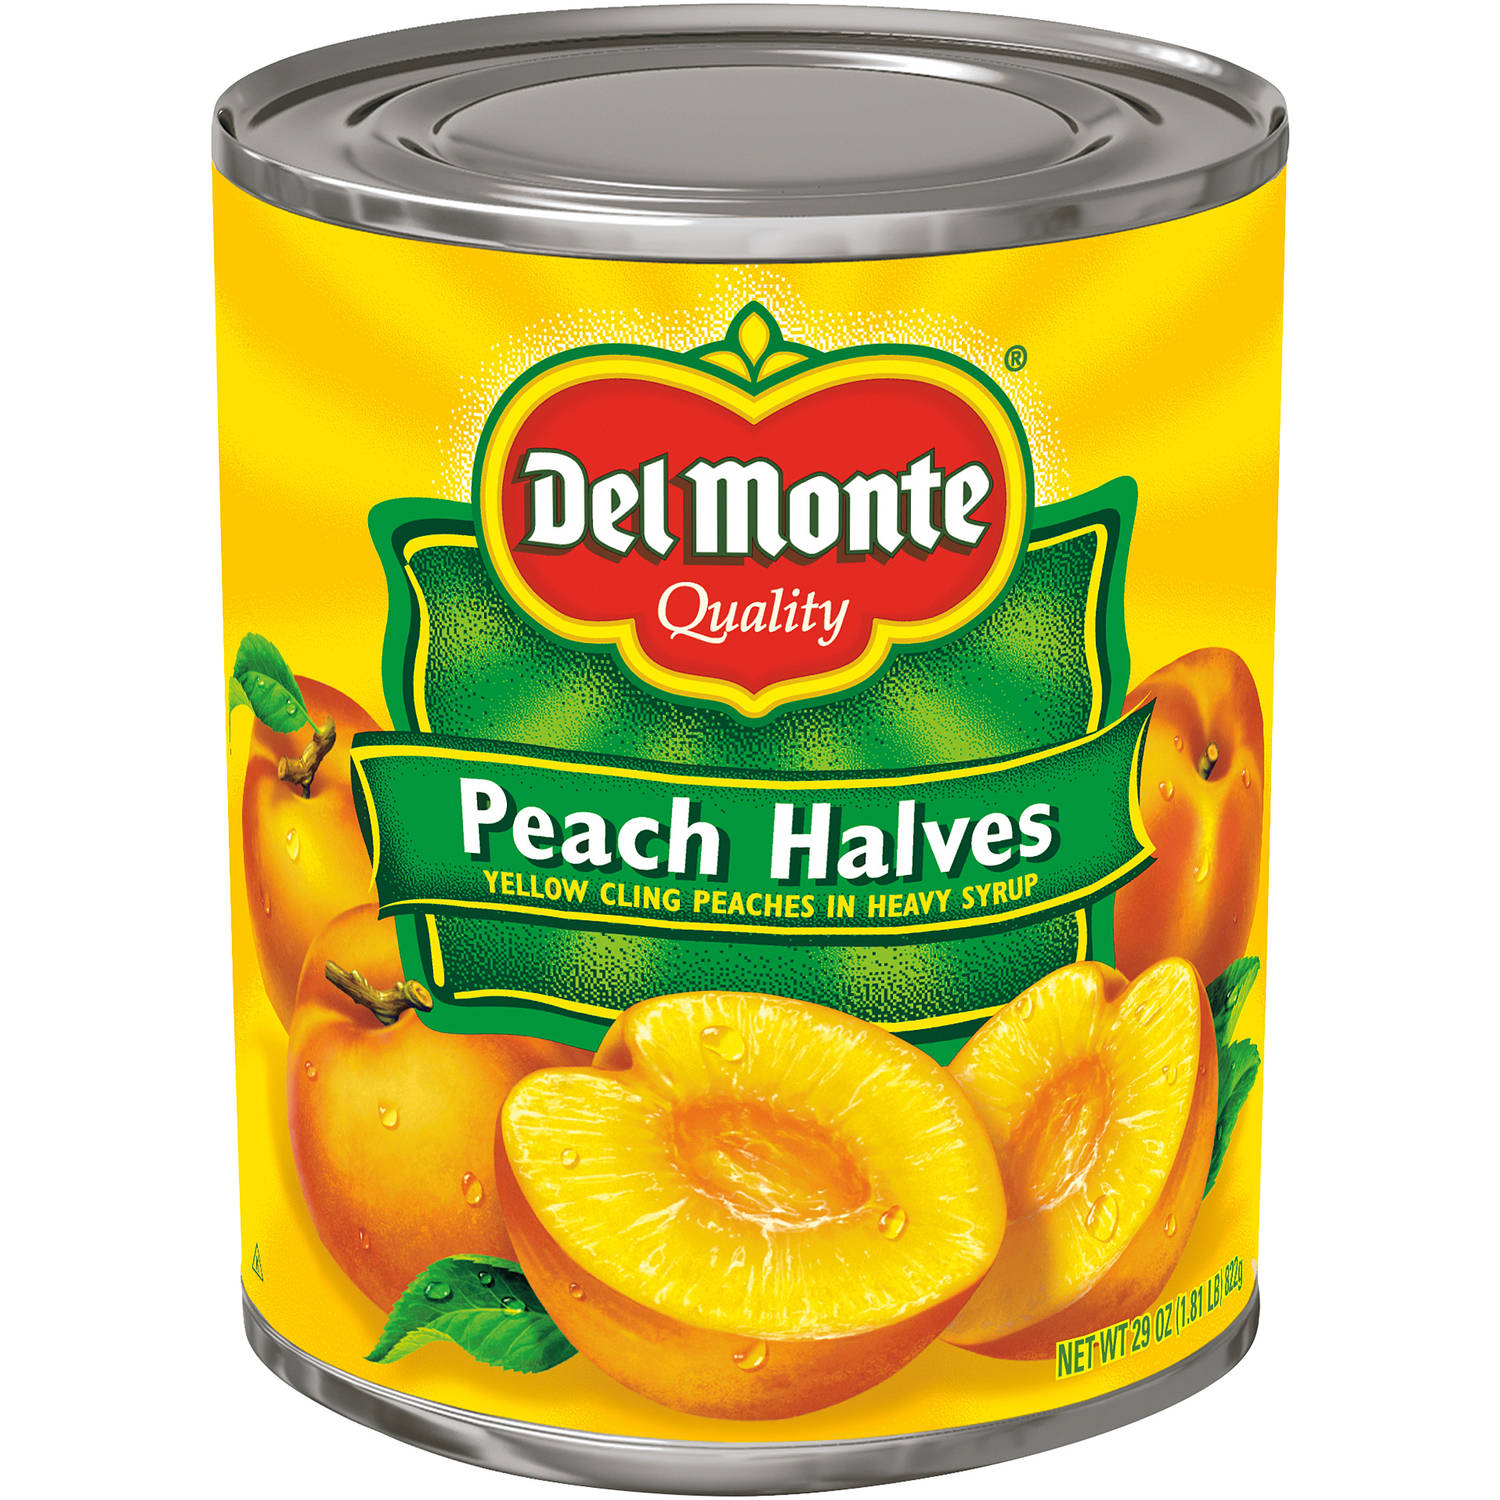 Del Monte Yellow Peach Halves Cling In Heavy Syrup, 29 oz